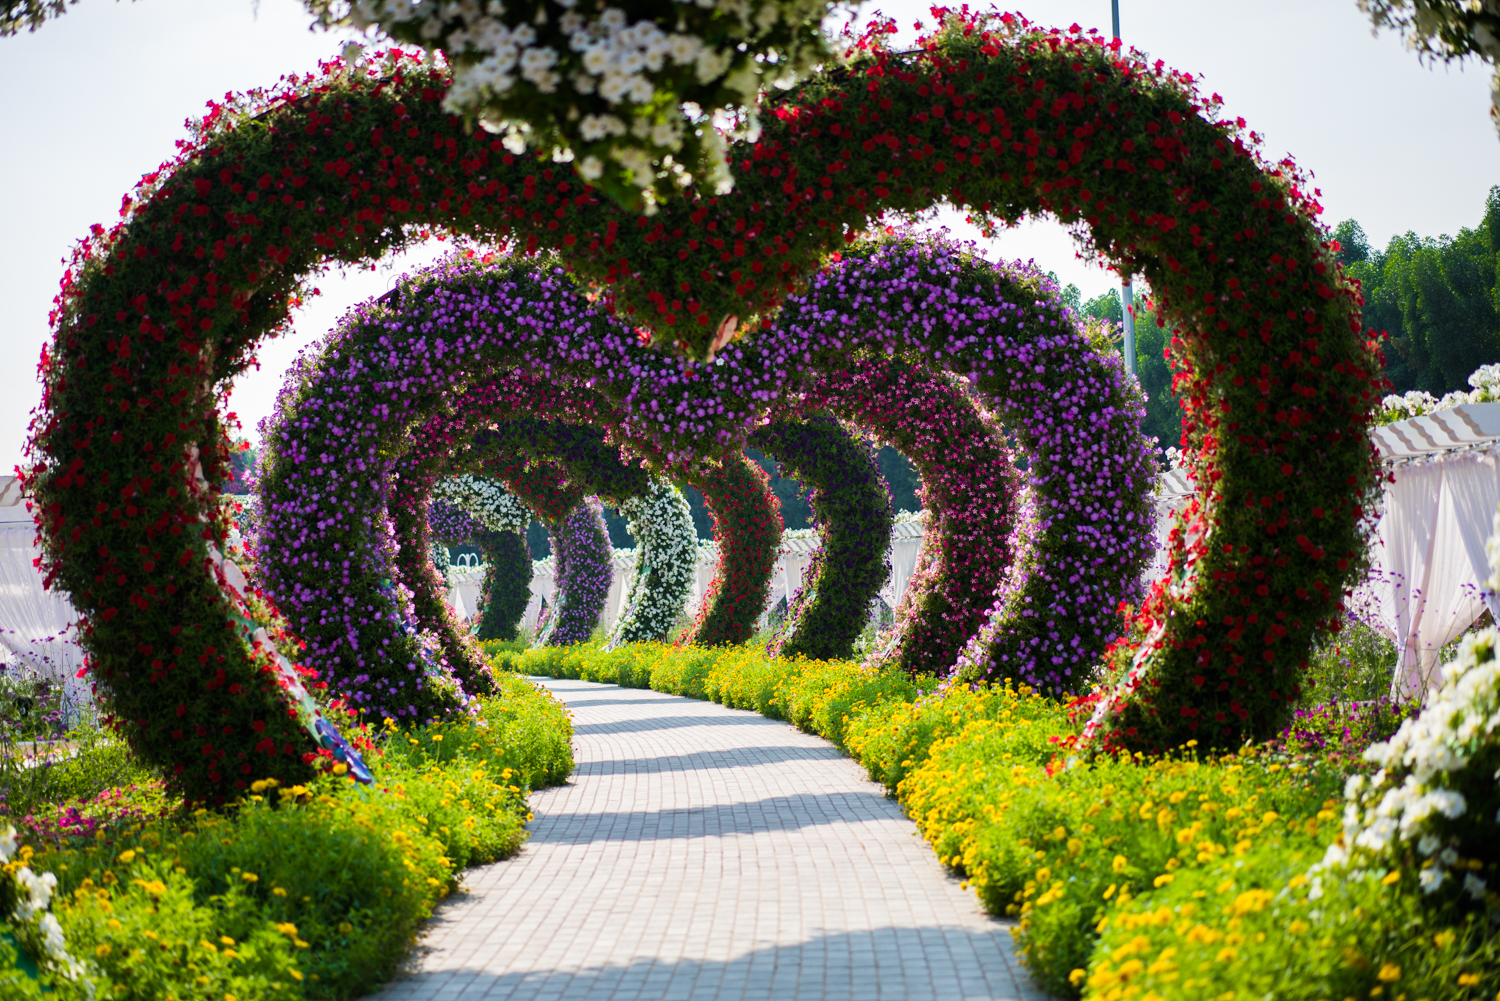 Heart shaped tunnel in the Miracle Garden.  Sony A7RII, Zeiss 55mm f/1.8 (iso100, f/1.8, 1/3200s)